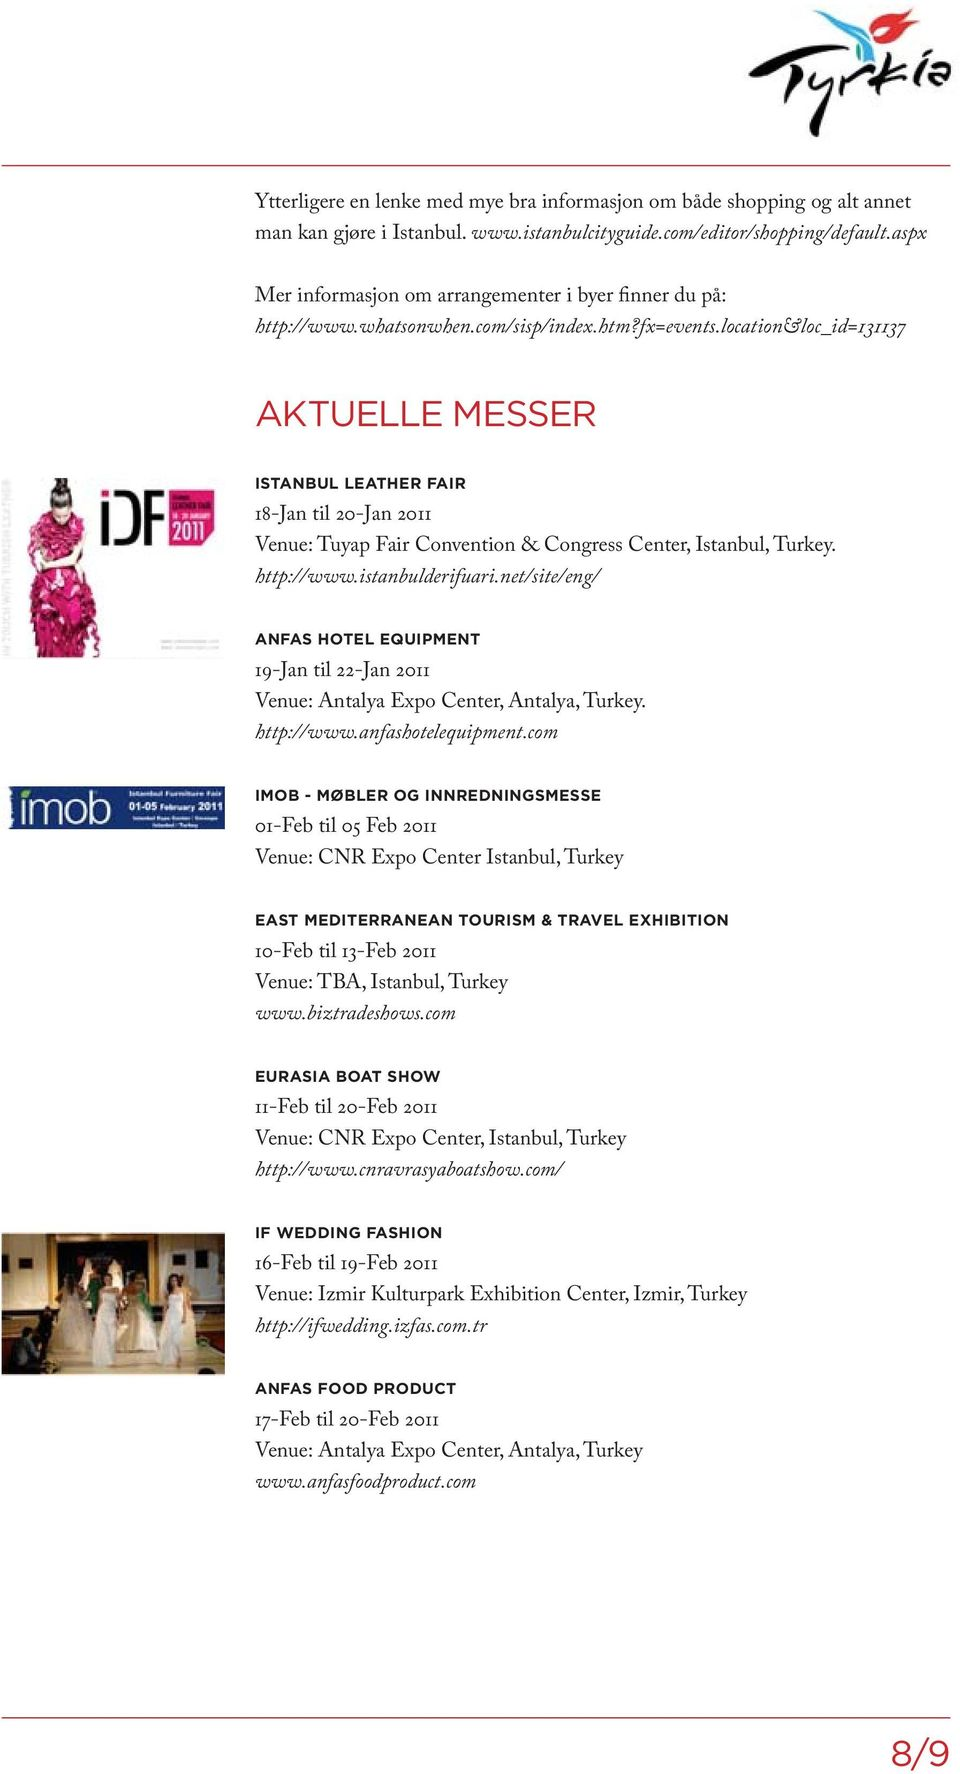 location&loc_id=131137 AKTUELLE MESSER ISTANBUL LEATHER FAIR 18-Jan til 20-Jan 2011 Venue: Tuyap Fair Convention & Congress Center, Istanbul, Turkey. http://www.istanbulderifuari.